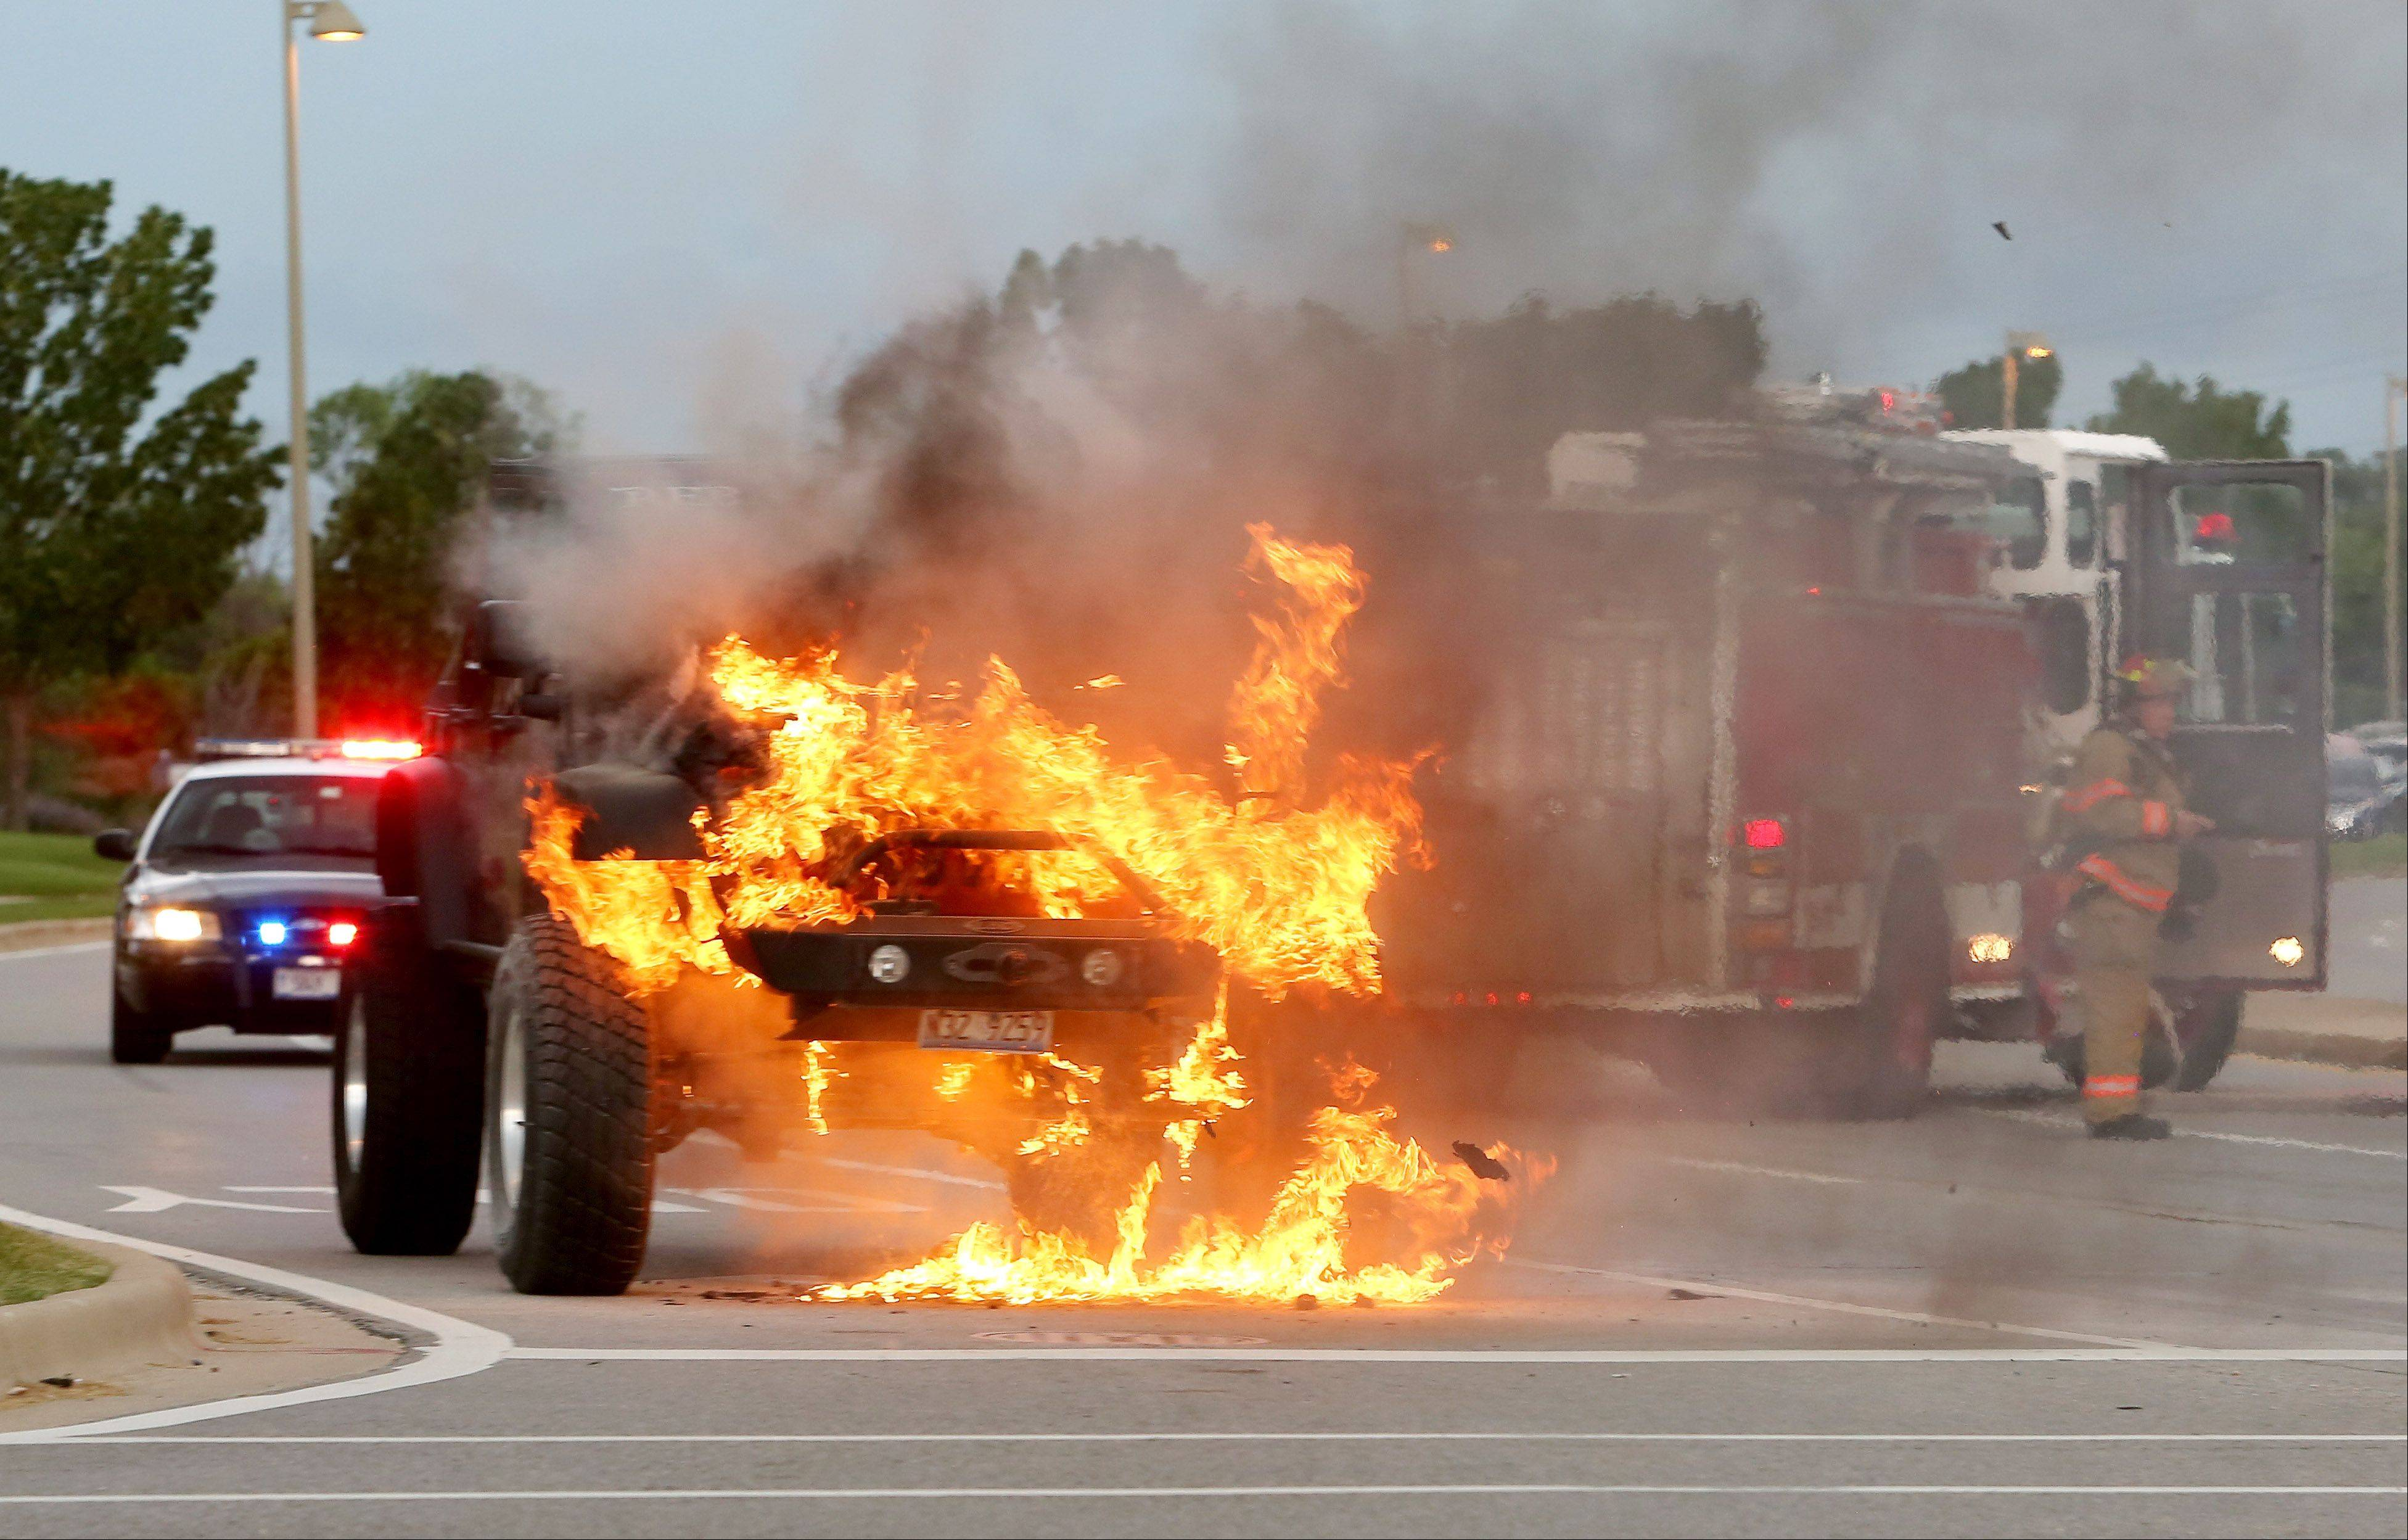 Firefighters arrive on the scene after a jeep caught fire on eastbound Diehl Road in Warrenville on Friday.